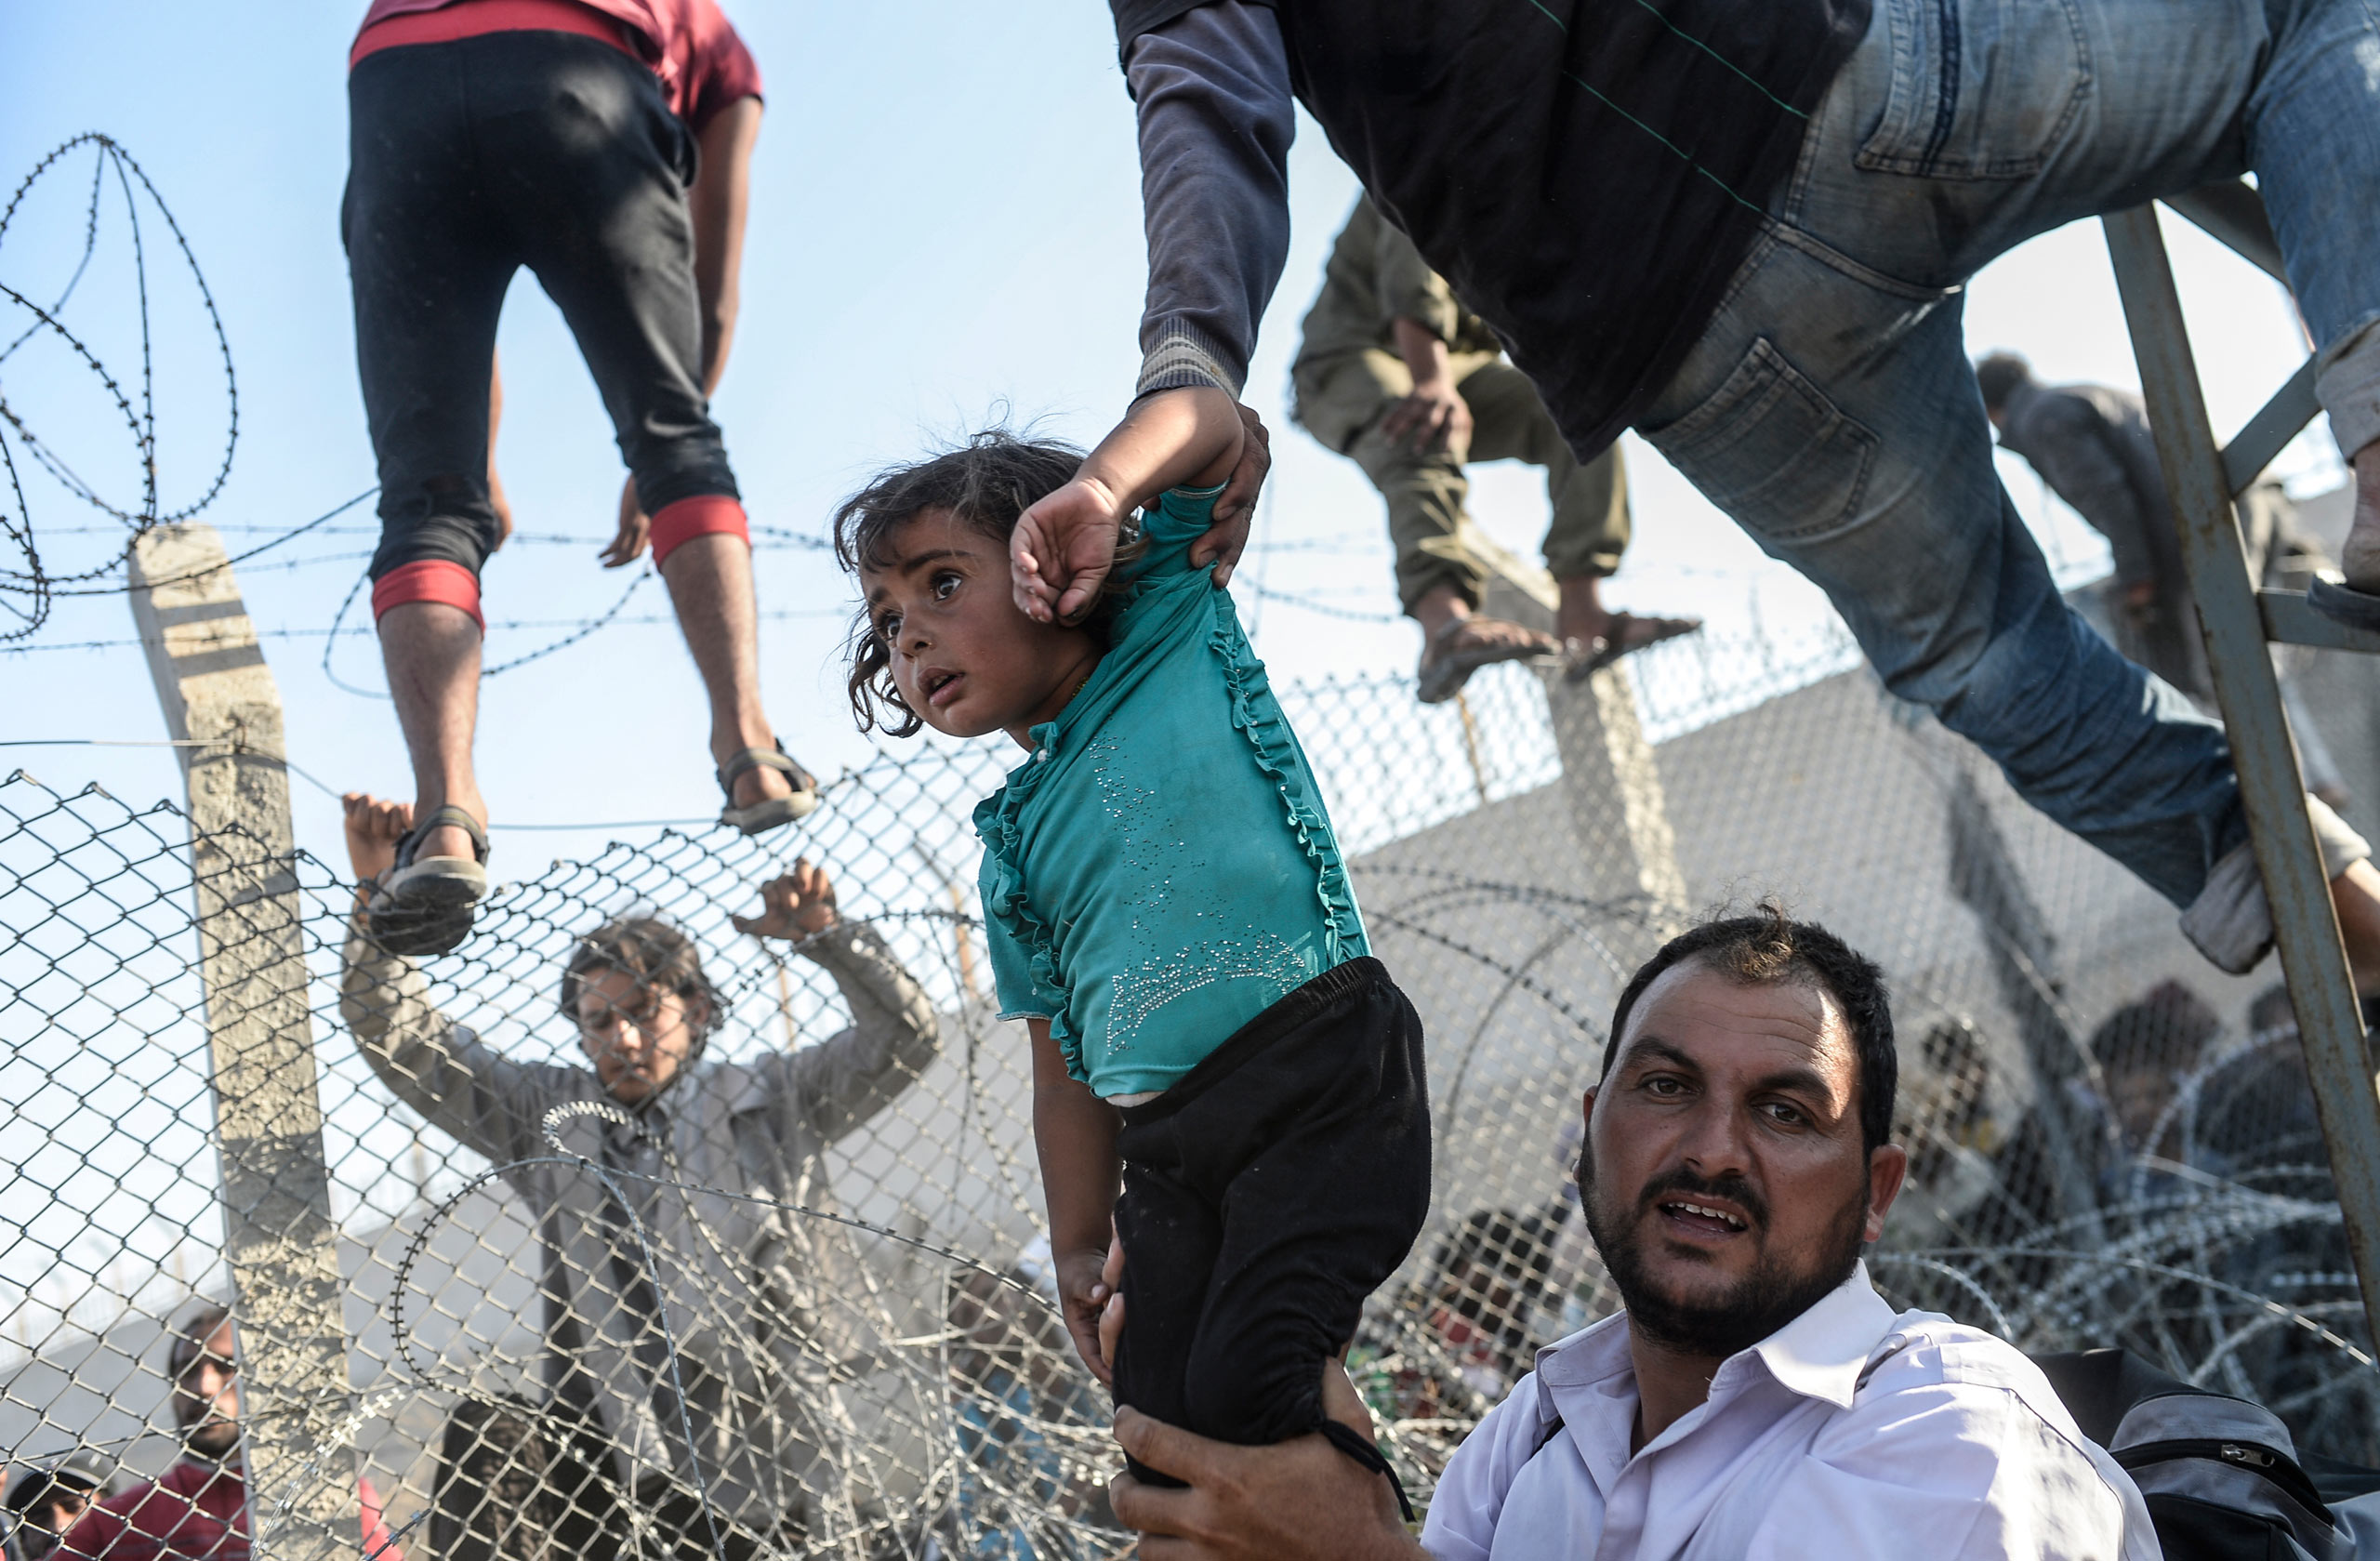 Thousands of Syrians break through the fences, crossing illegally the Syrian-Turkish border. Many of them are little children and infants. June 14, 2015.